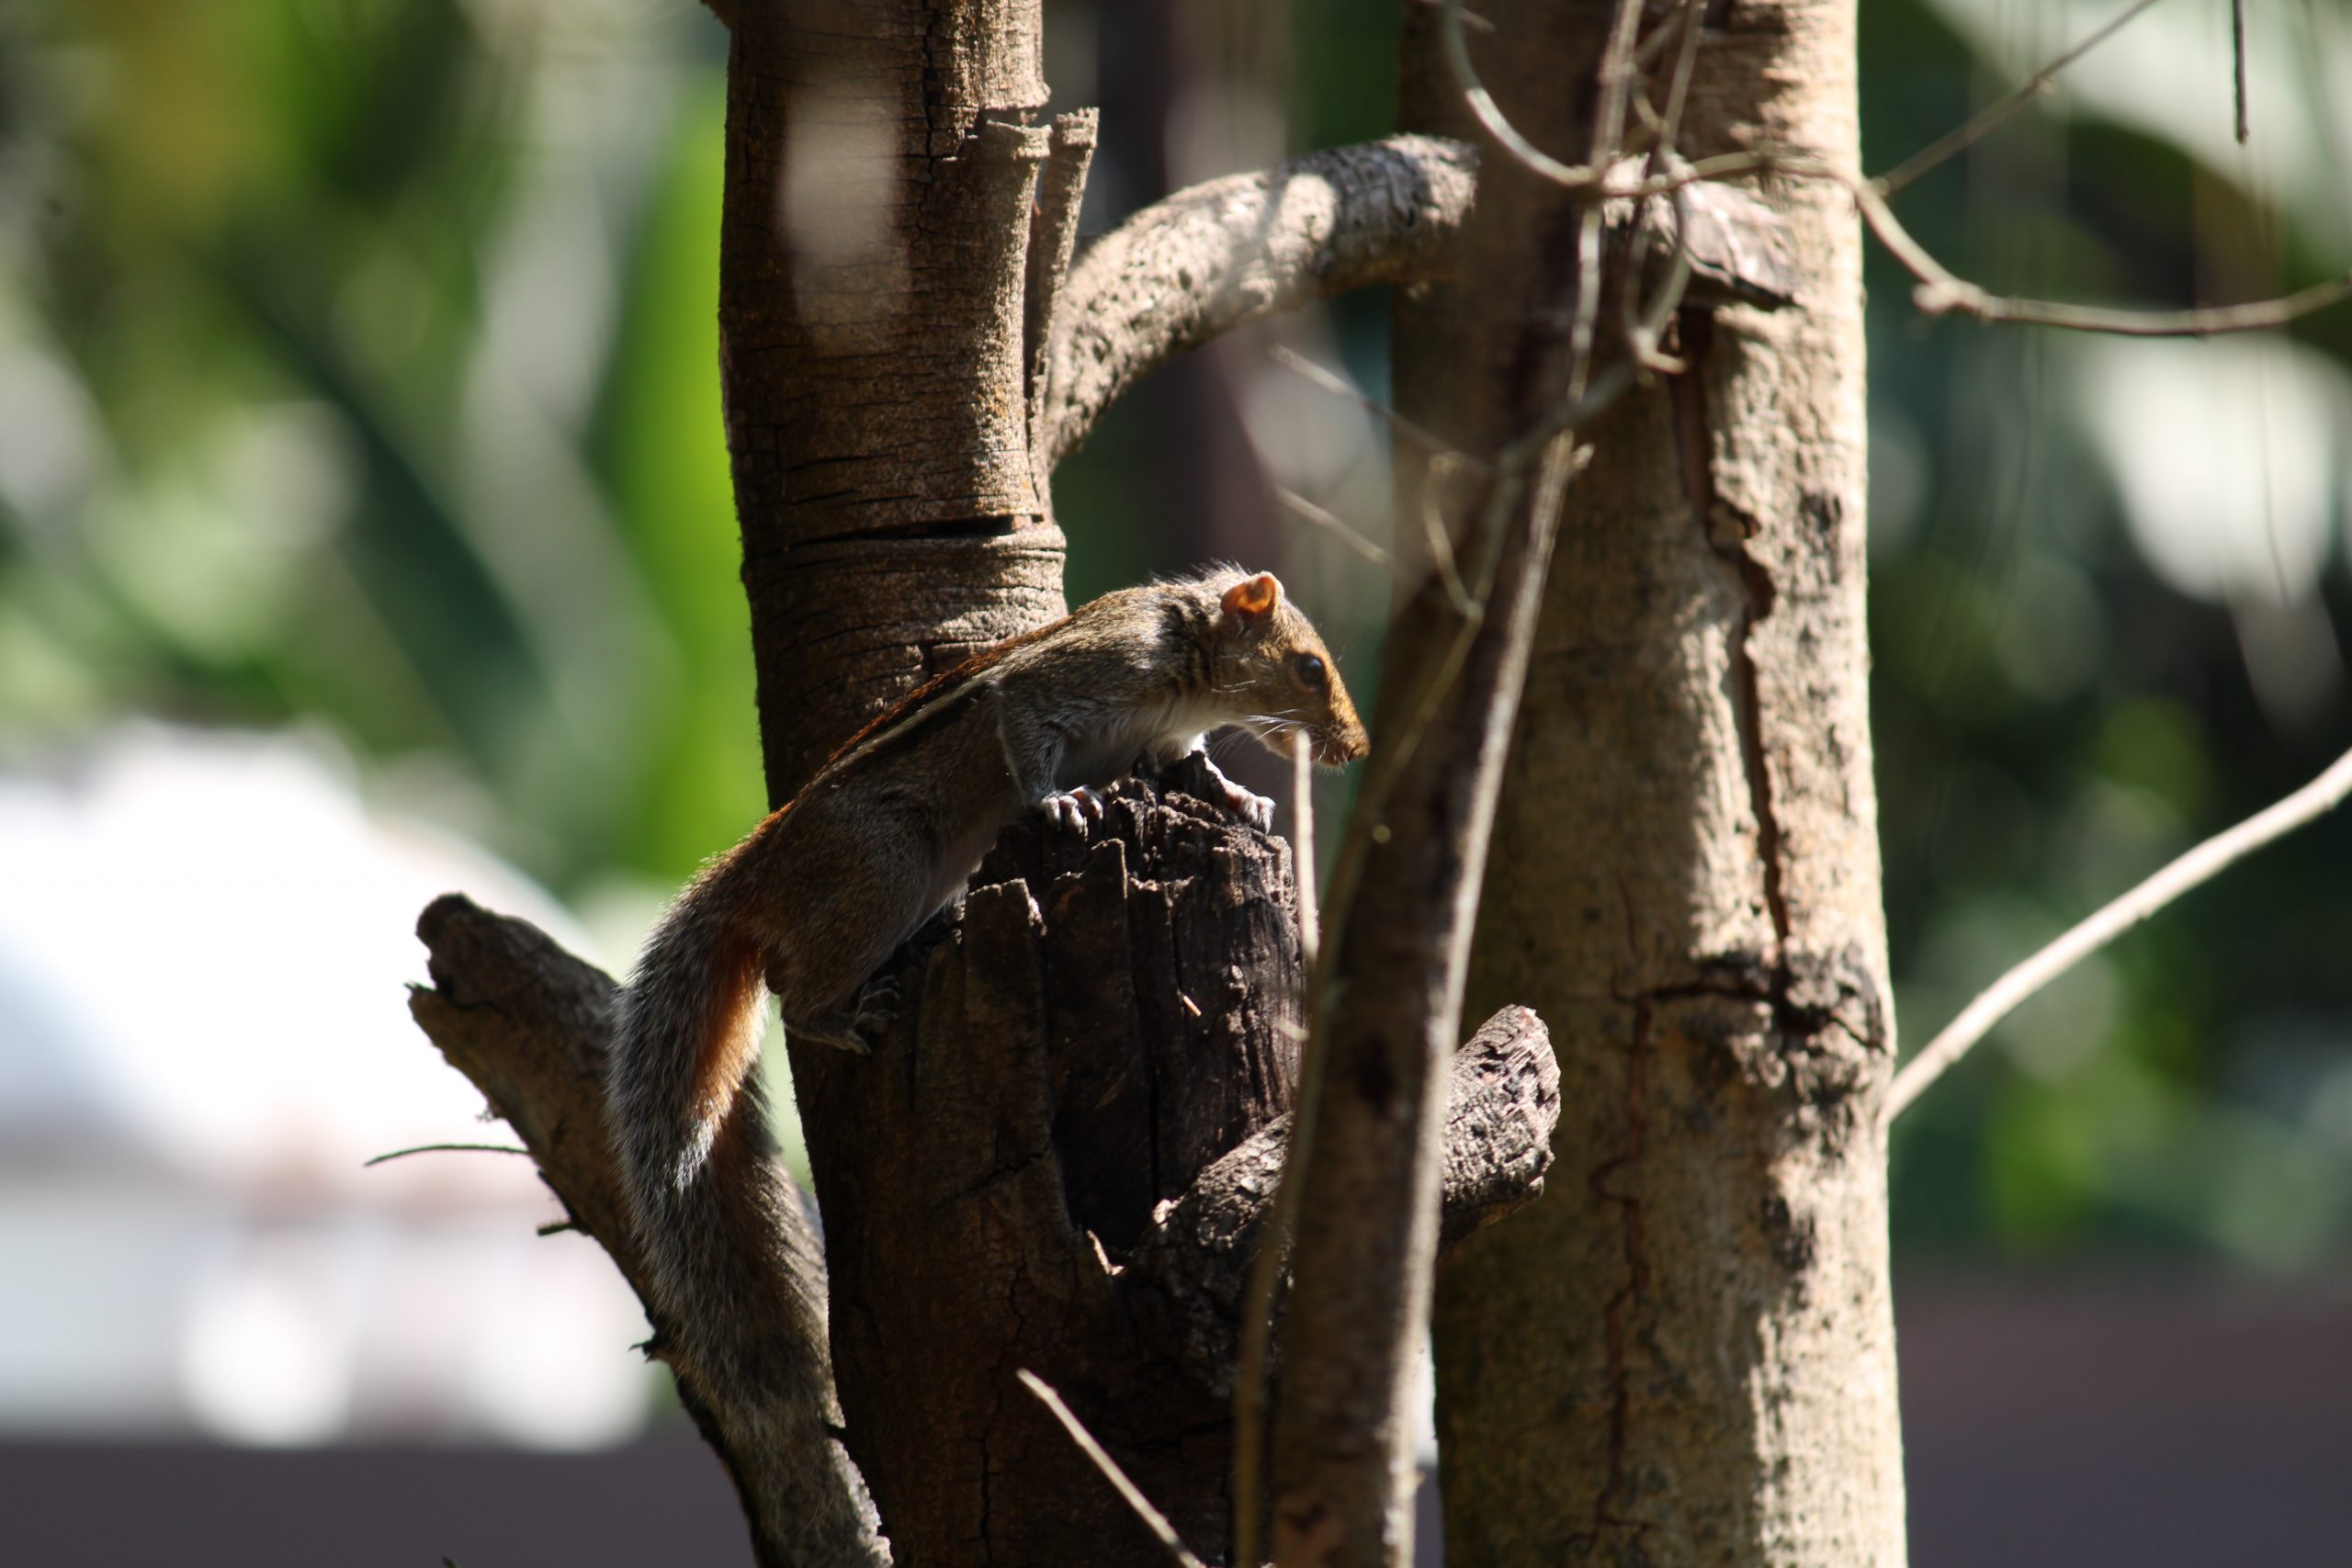 squirrel on a tree trunk